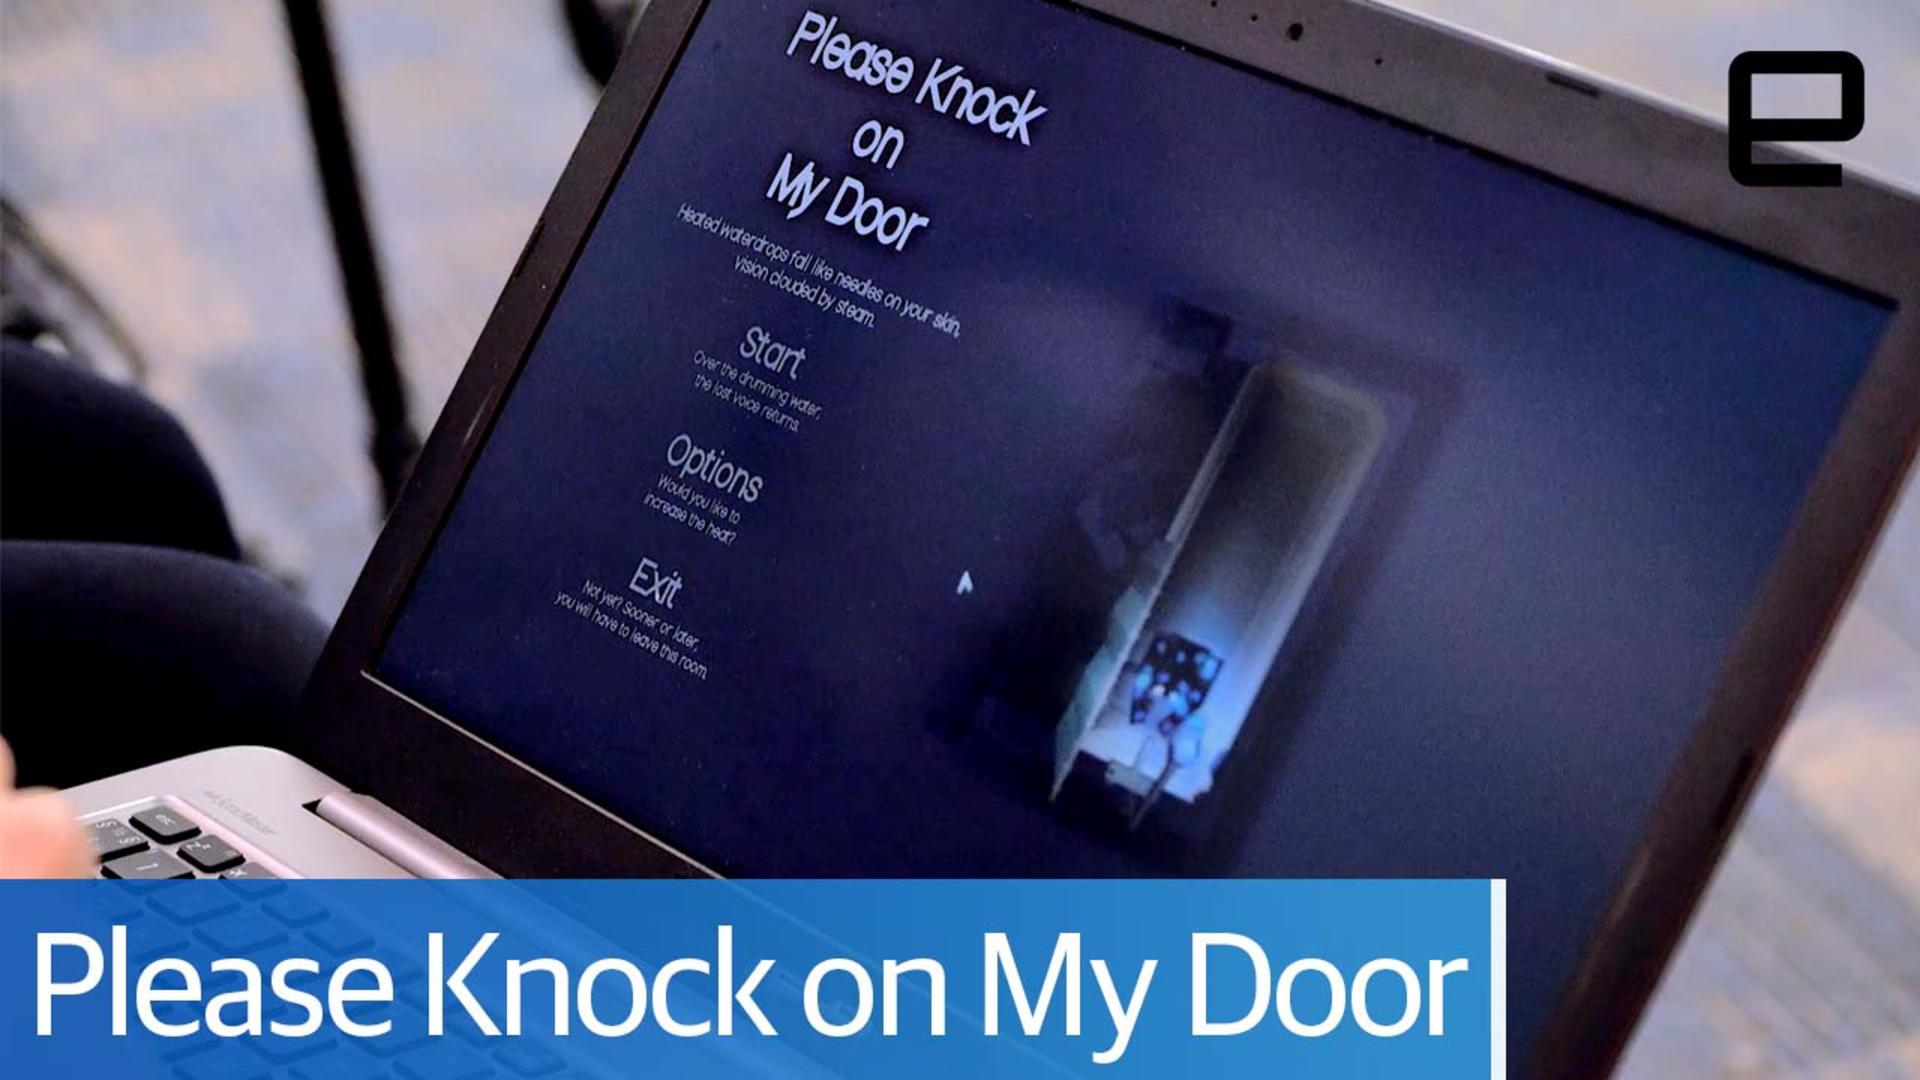 'Please Knock on My Door' is a digital life of depression